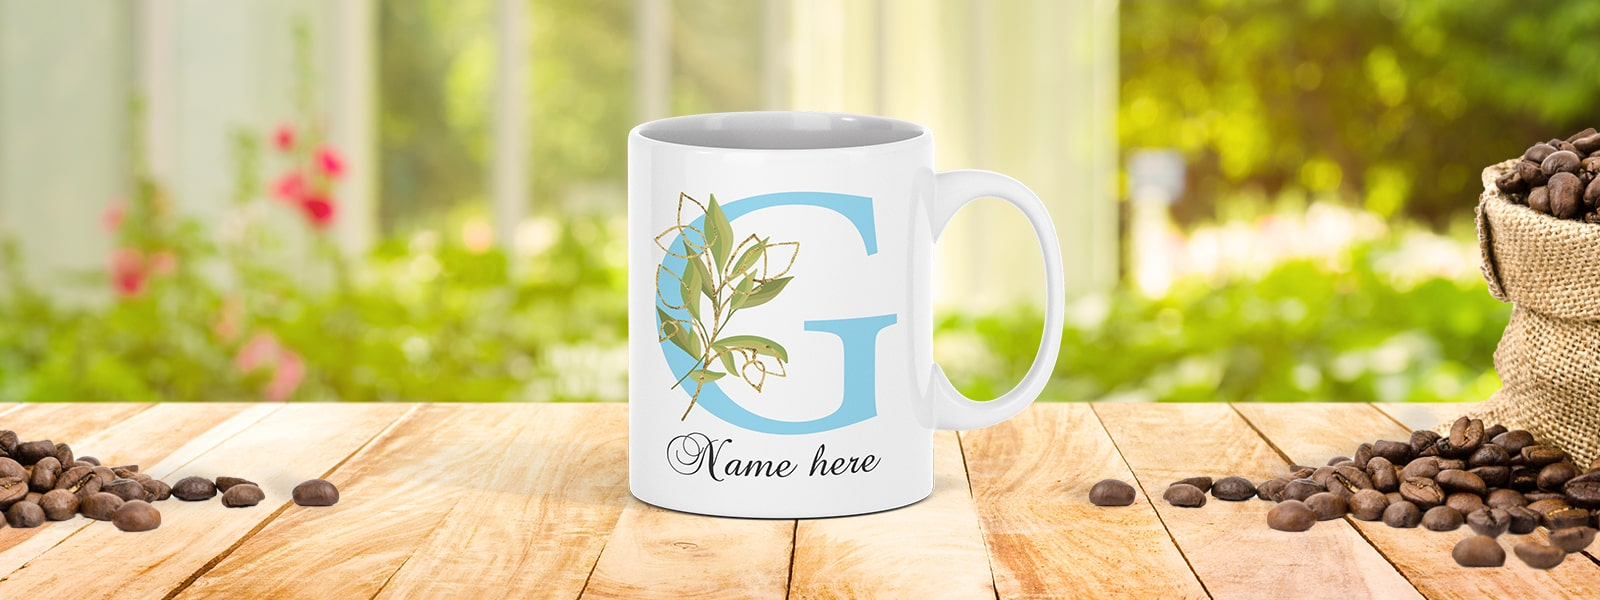 The Best Custom Mugs You Can Get for Every Occasion